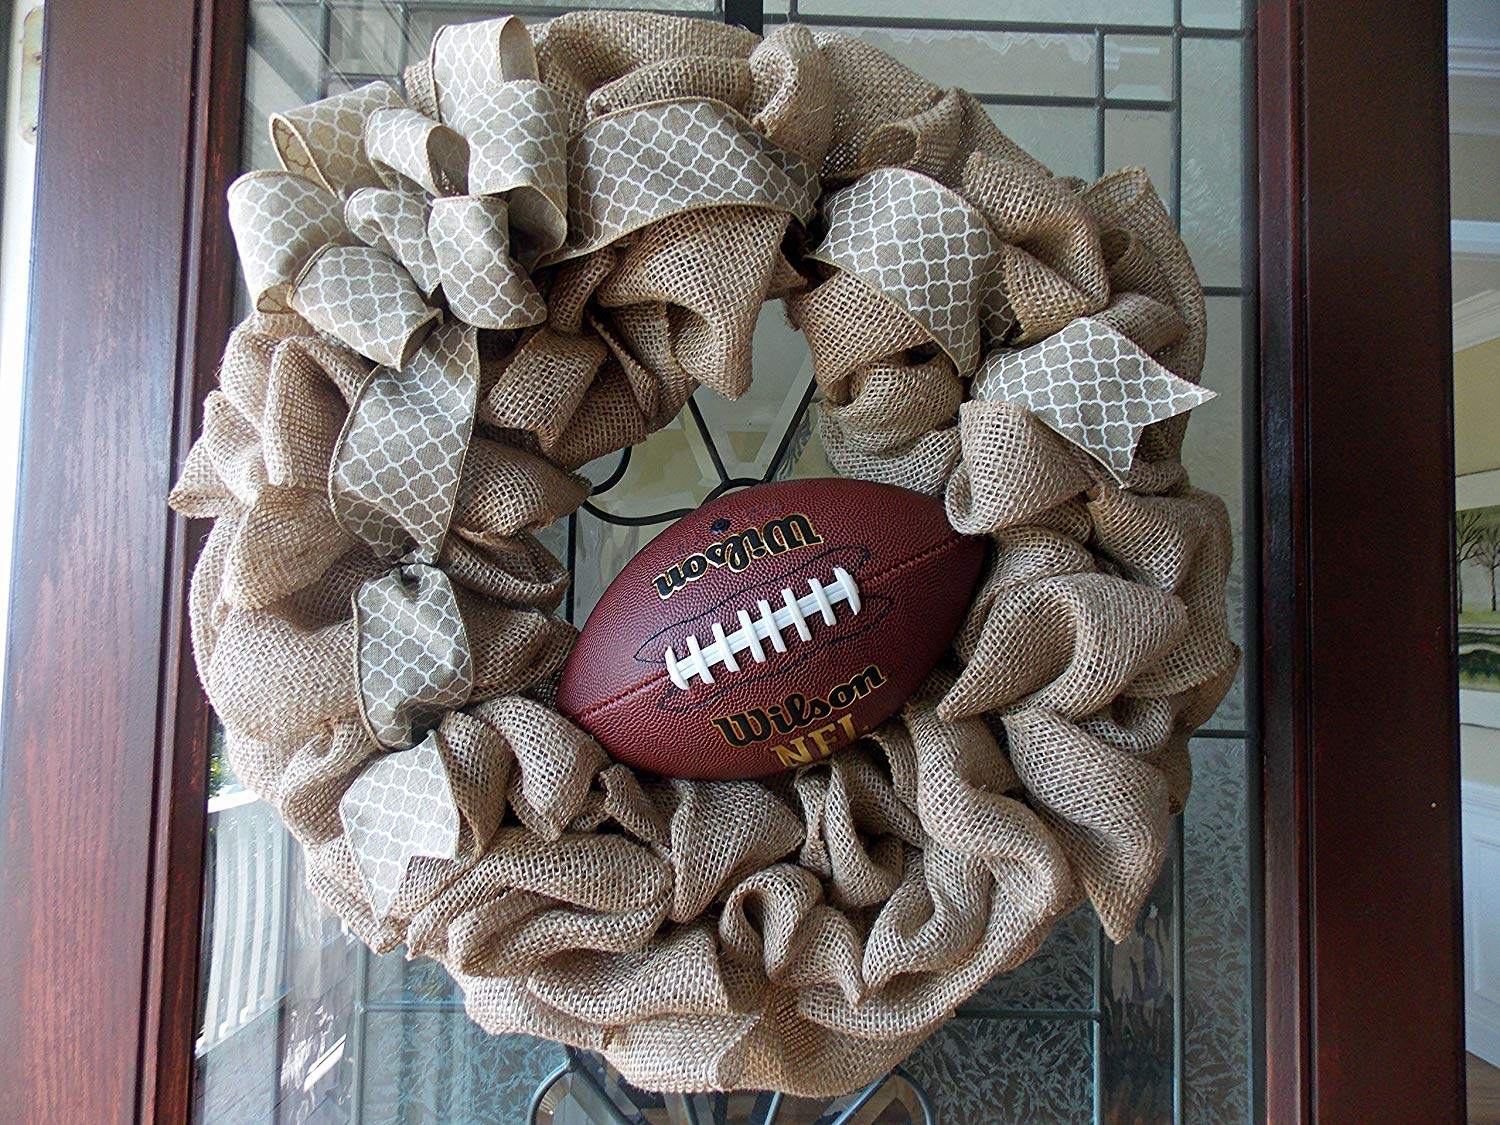 Football Wreath-Fall Football Wreath-Fall Wreath-Fall Wreaths for Front Door-Fall Door Wreath-Fall Burlap Wreath-Front Door Decor-Football-Fall Door Wreaths-Front Door Wreaths